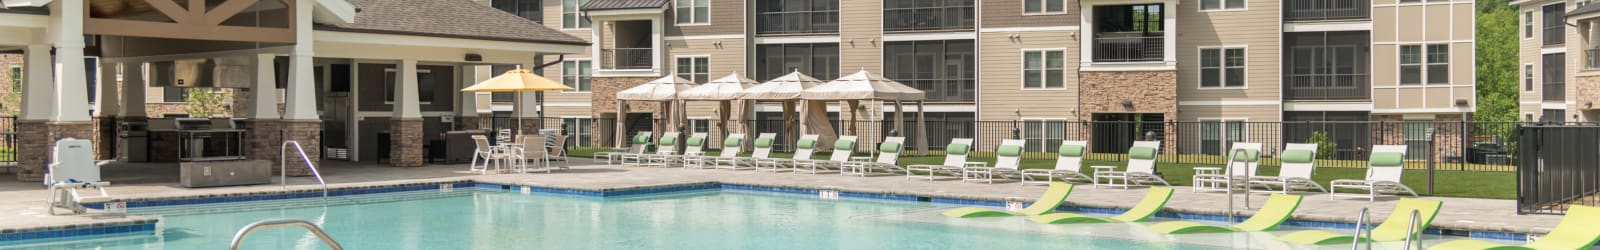 Read all about events at Fredericksburg apartments